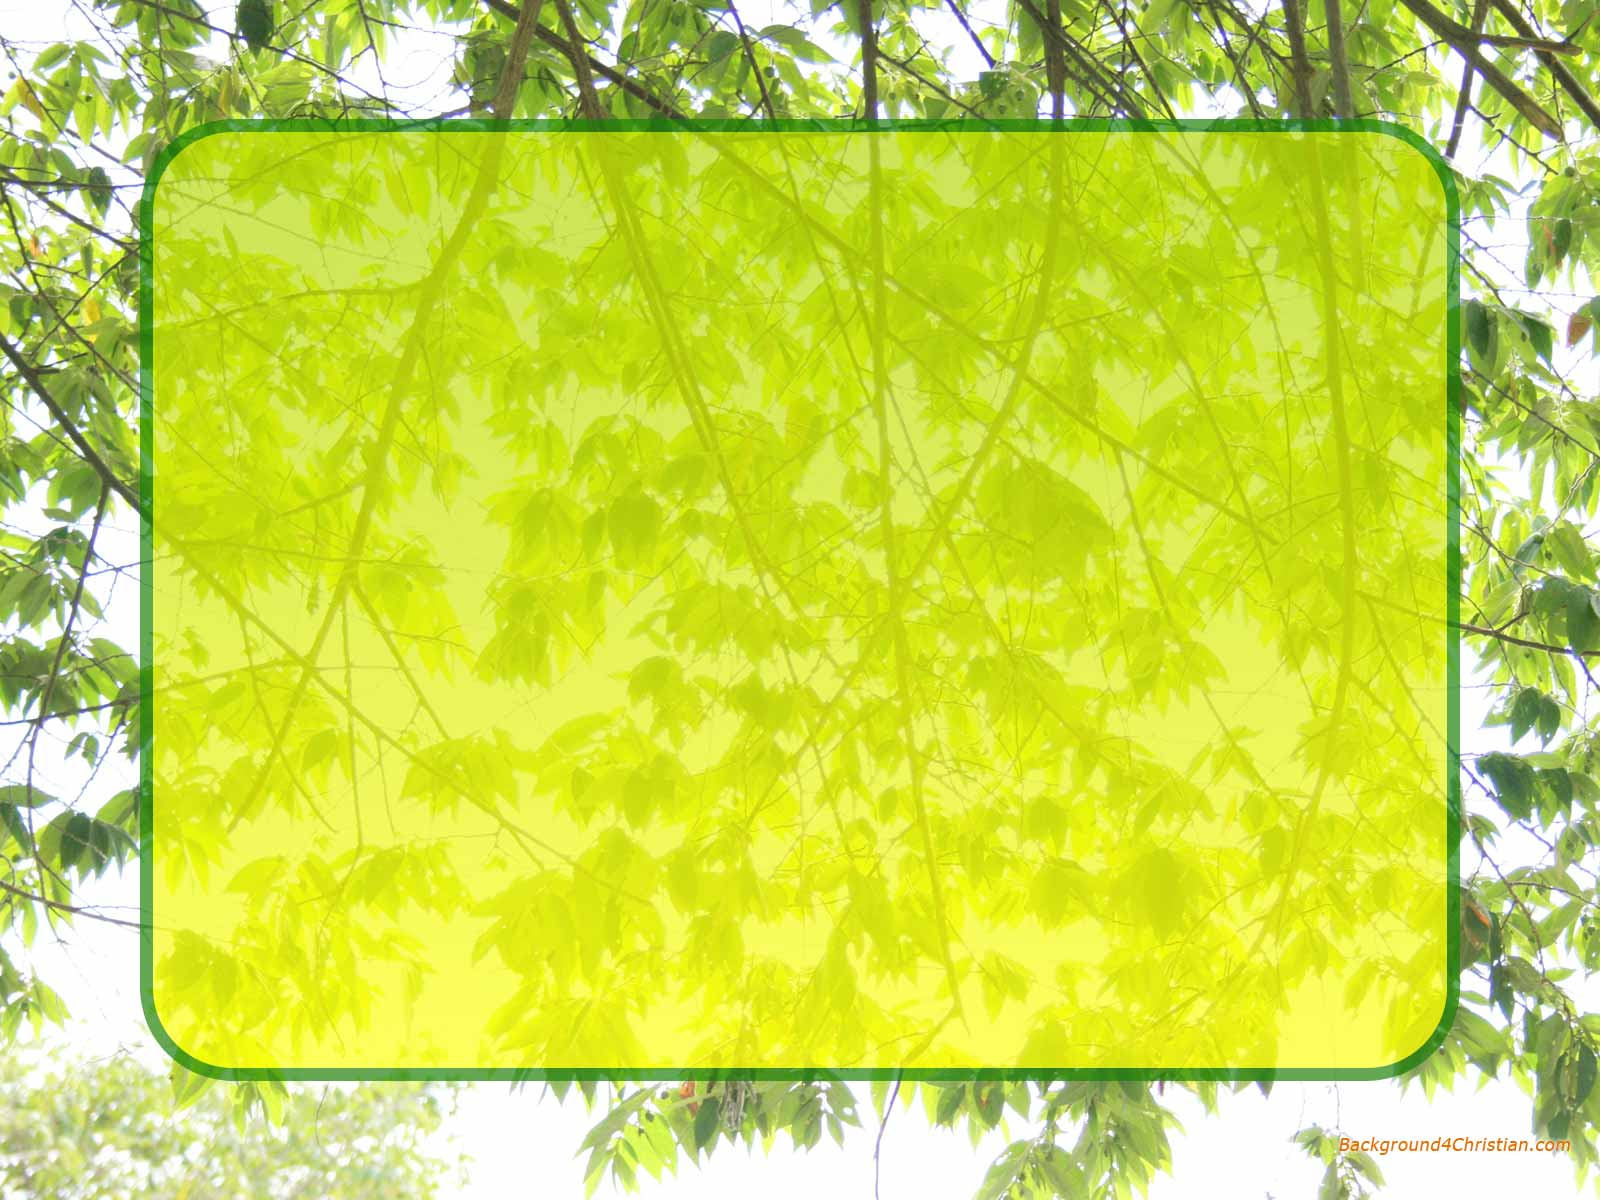 leaf tree border frame for desktop wallpaper or powerpoint backgrounds